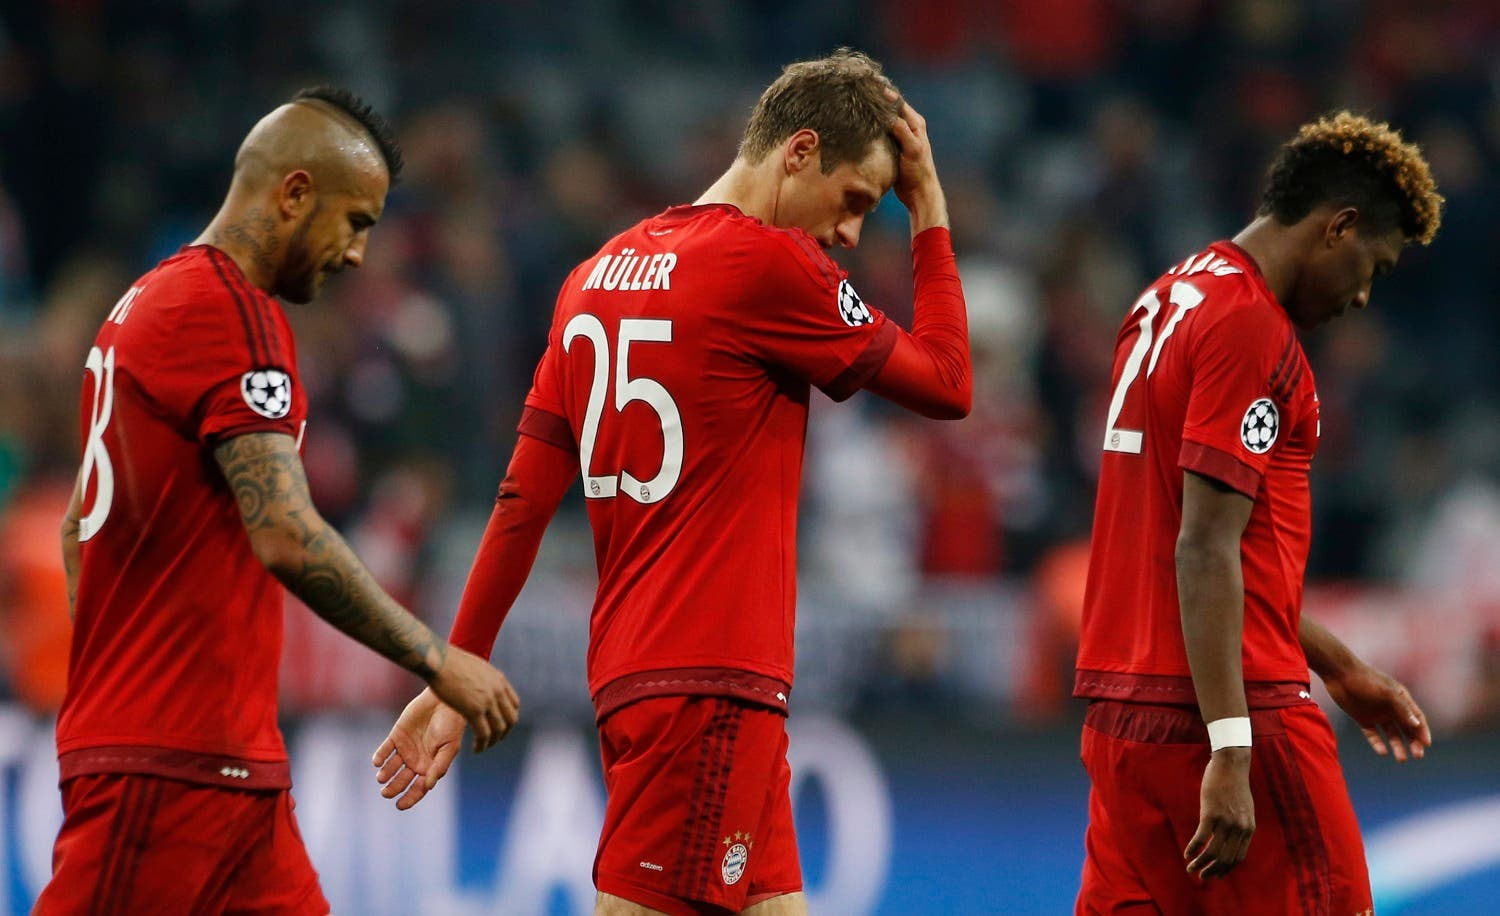 Bayern Munich's Arturo Vidal, Thomas Muller and David Alaba look dejected after the game Reuters